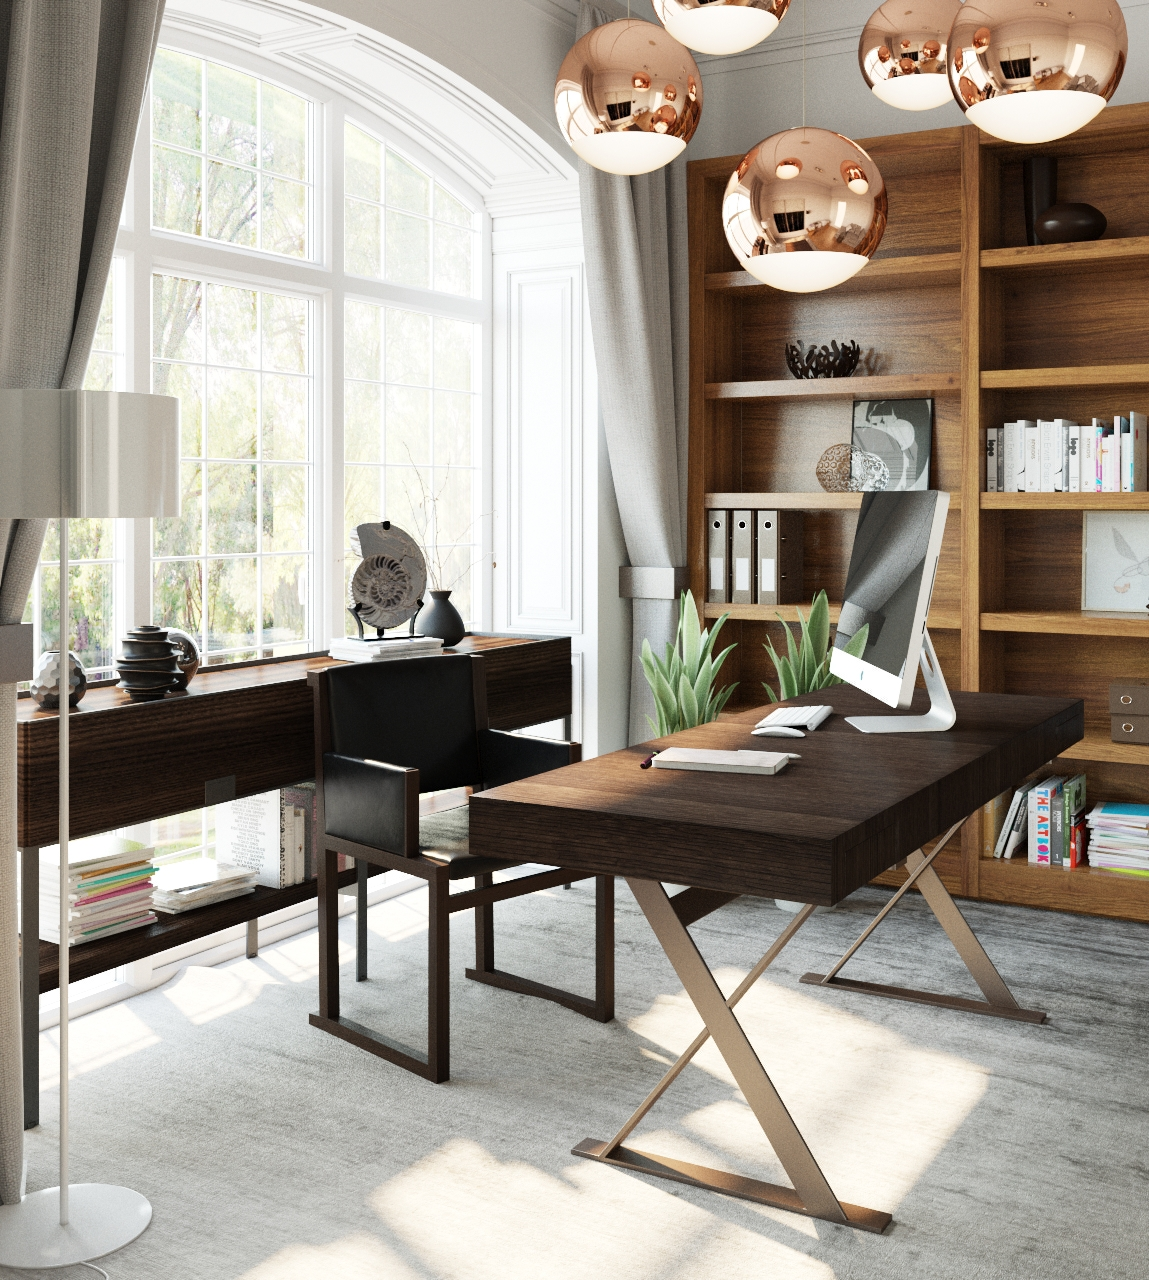 modern-home-office Interior Design Ideas. - ^